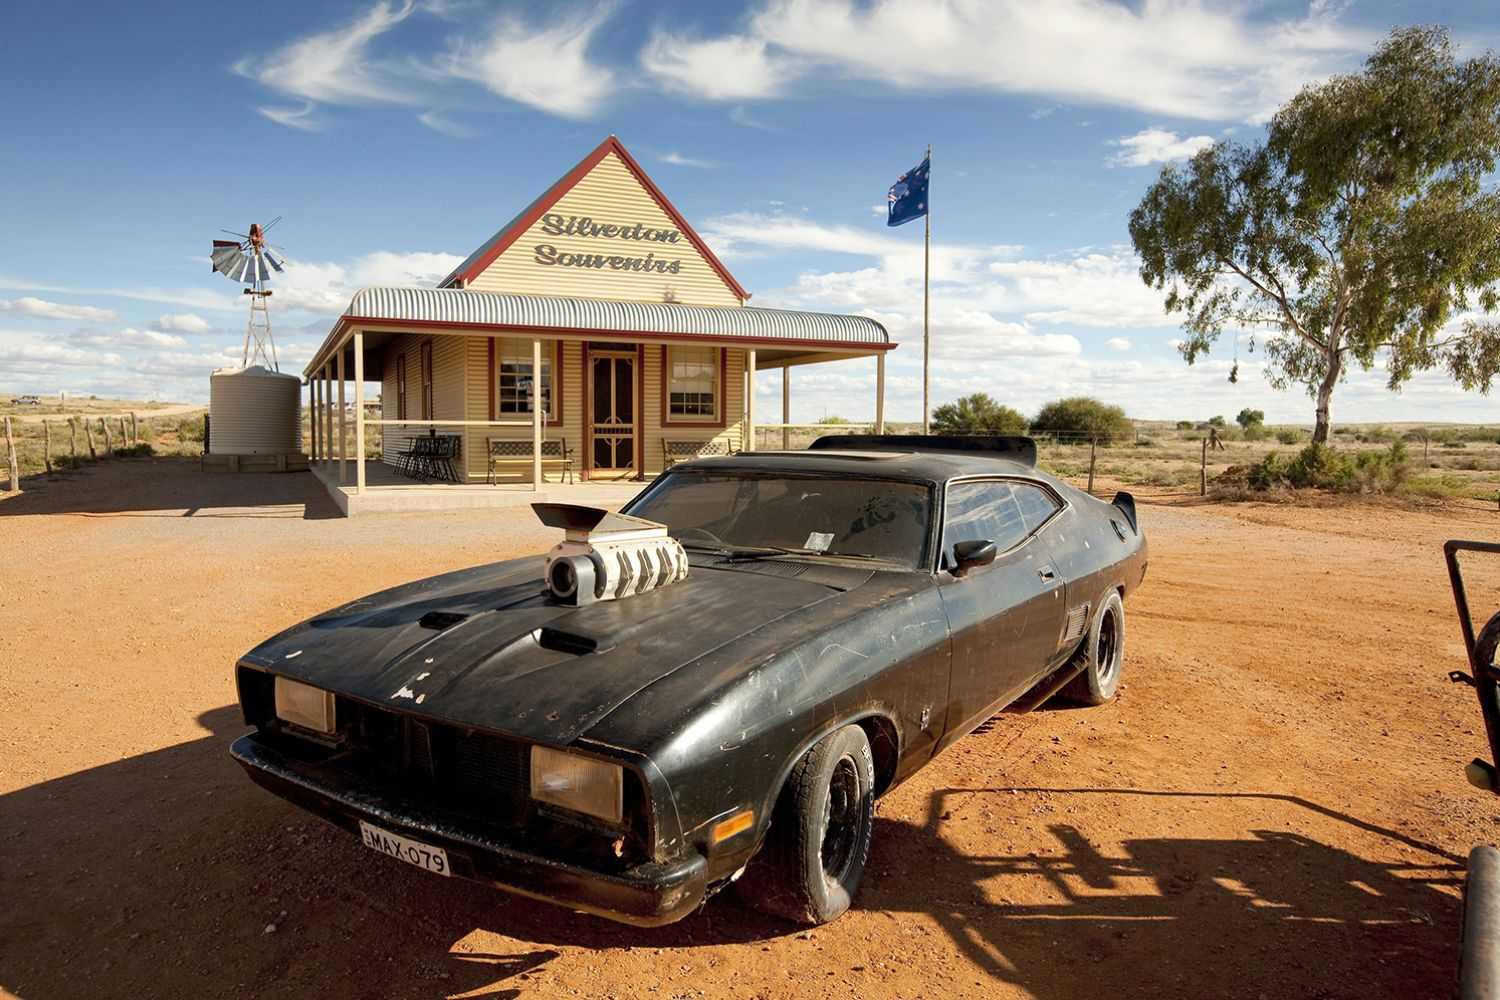 Mad Max Car at Silverton, Outback